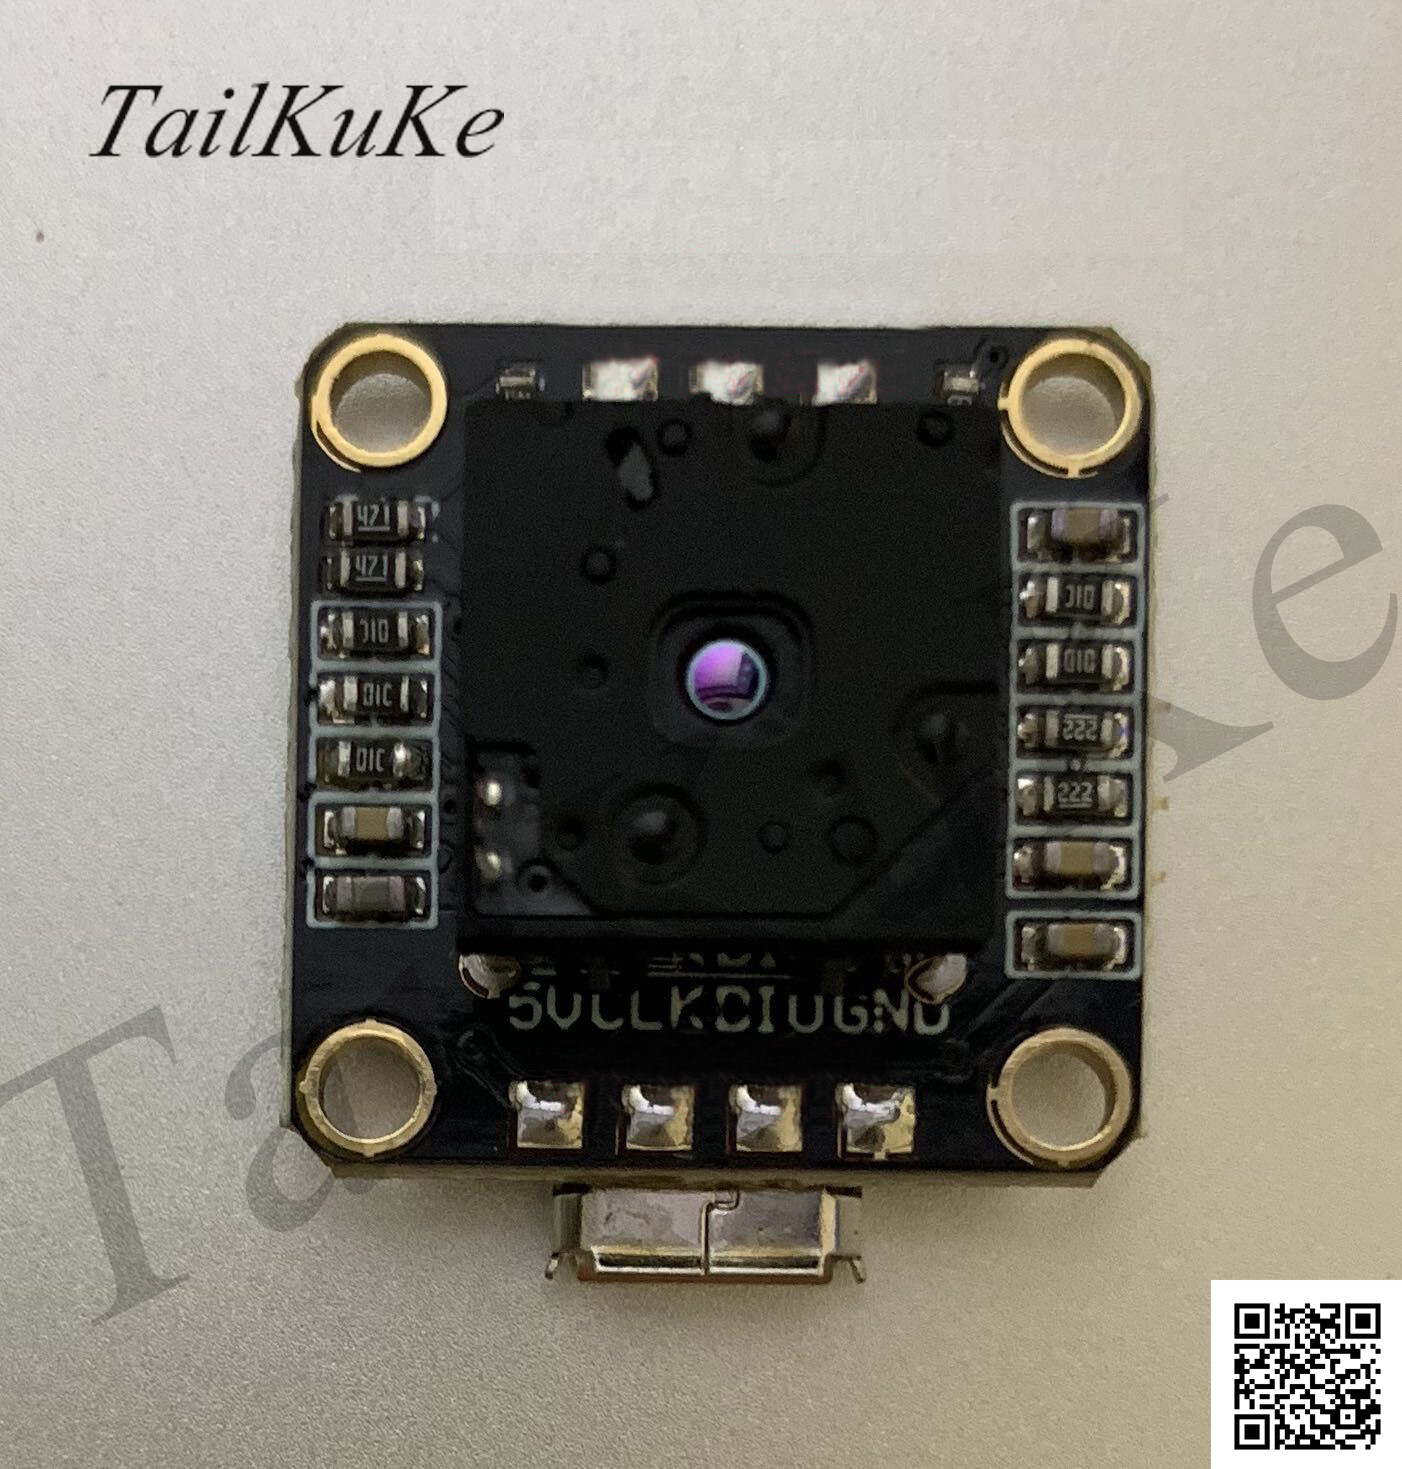 Flir Lepton 2.5 3.5 Thermal Imager Thermal Imaging Temperature Support Raspberry Pi Openmv4